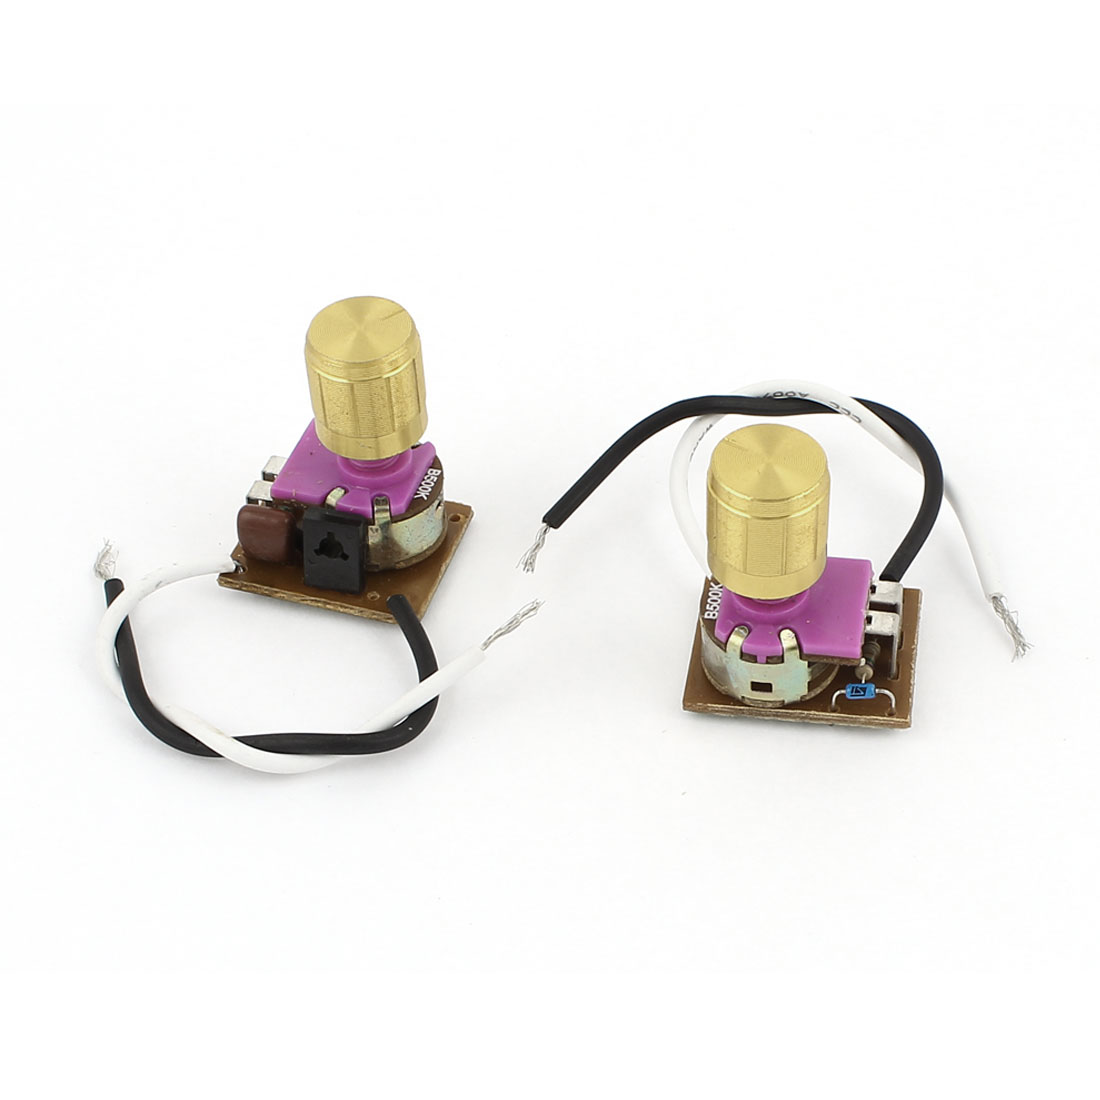 2Pcs AC220V 1-3A 2-Wire Gold Tone Rotatable Knob Desk Lamp Dimmer Switch